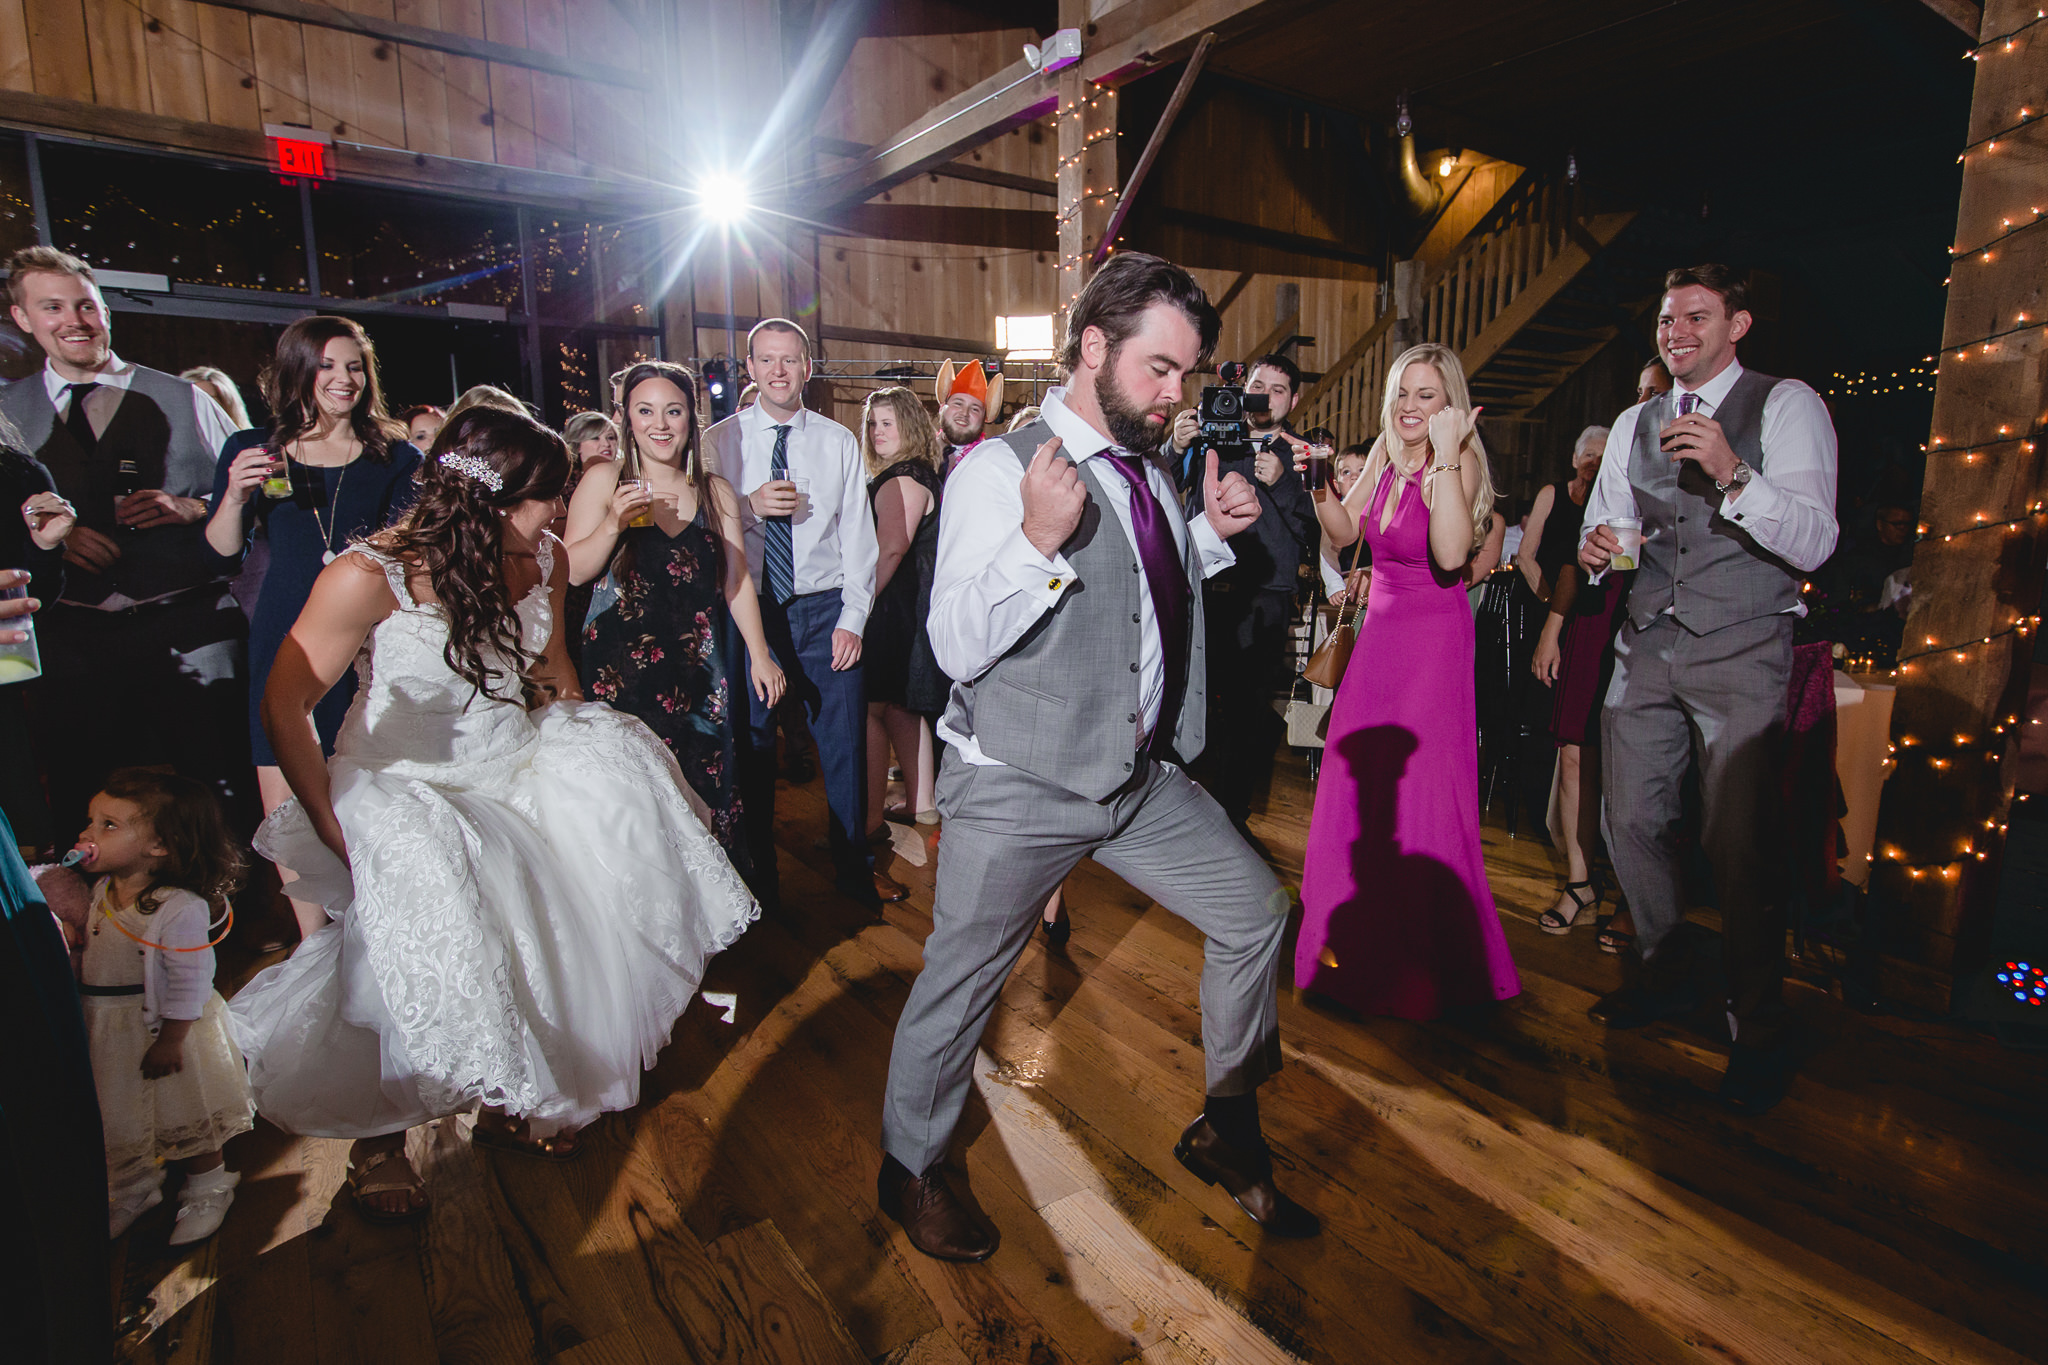 Best man shows off his dances moves at White Barn